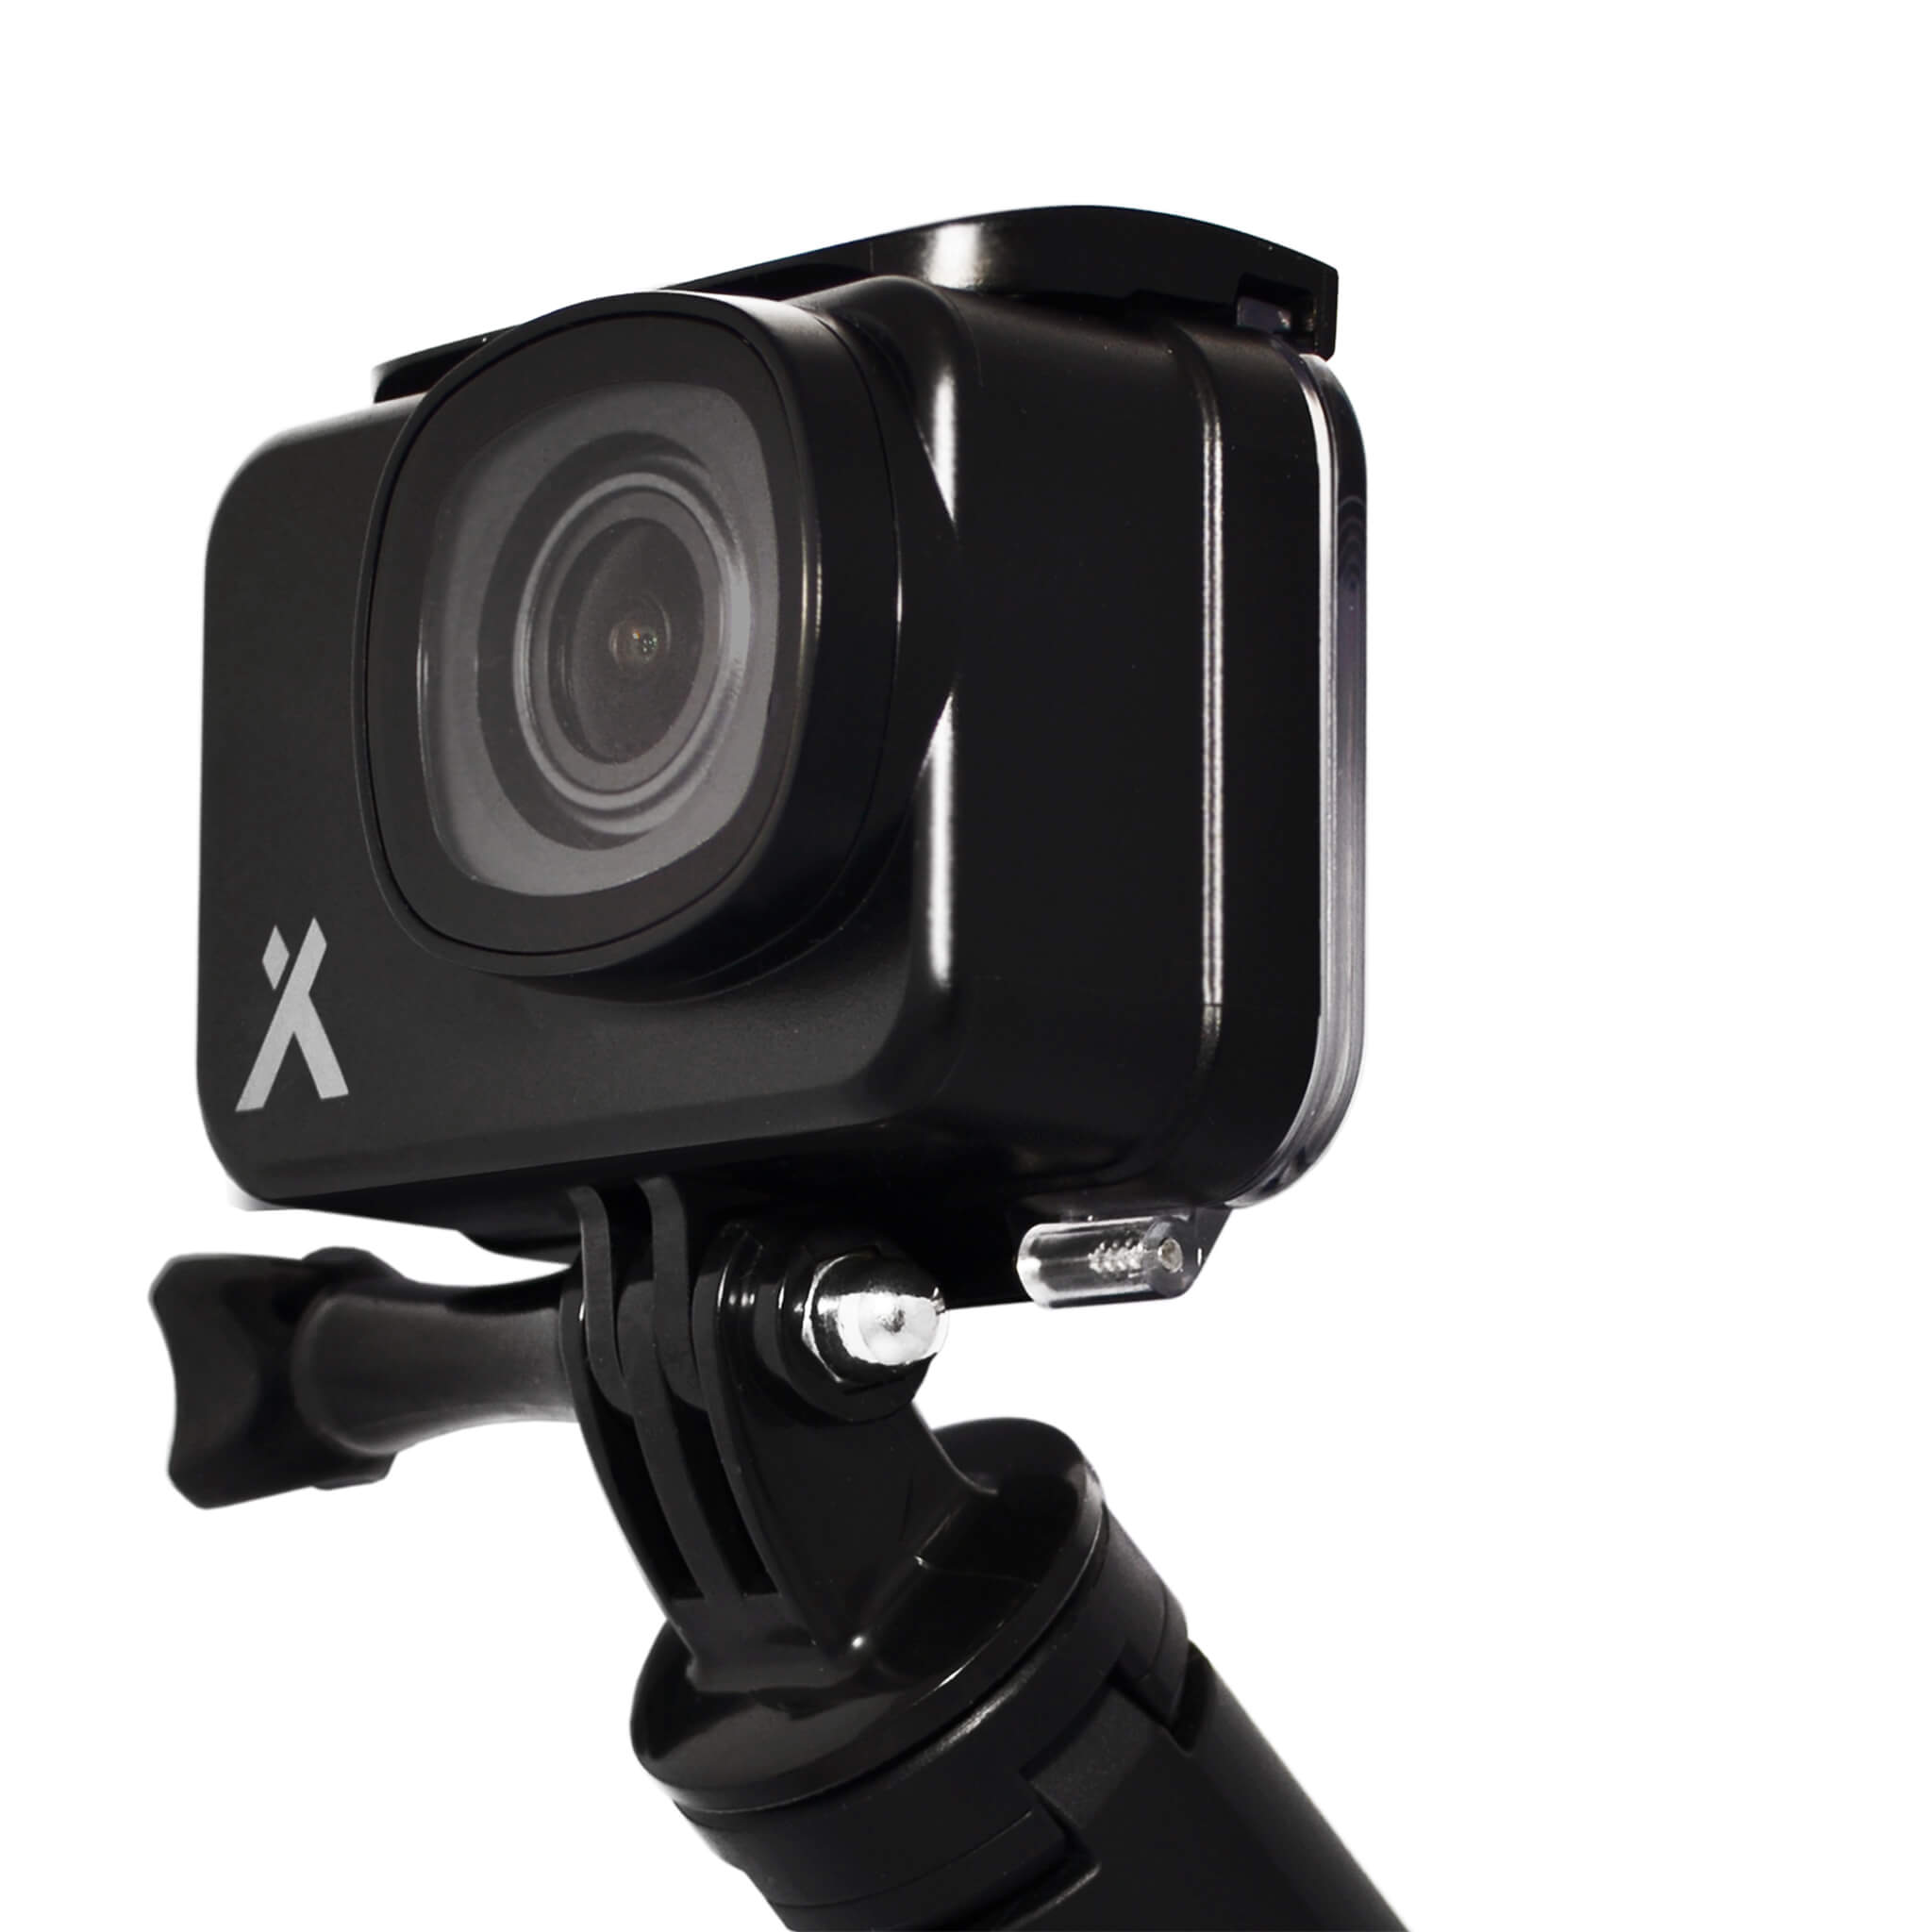 A tripod handle mount is also included with Bear Grylls HD Action Camera